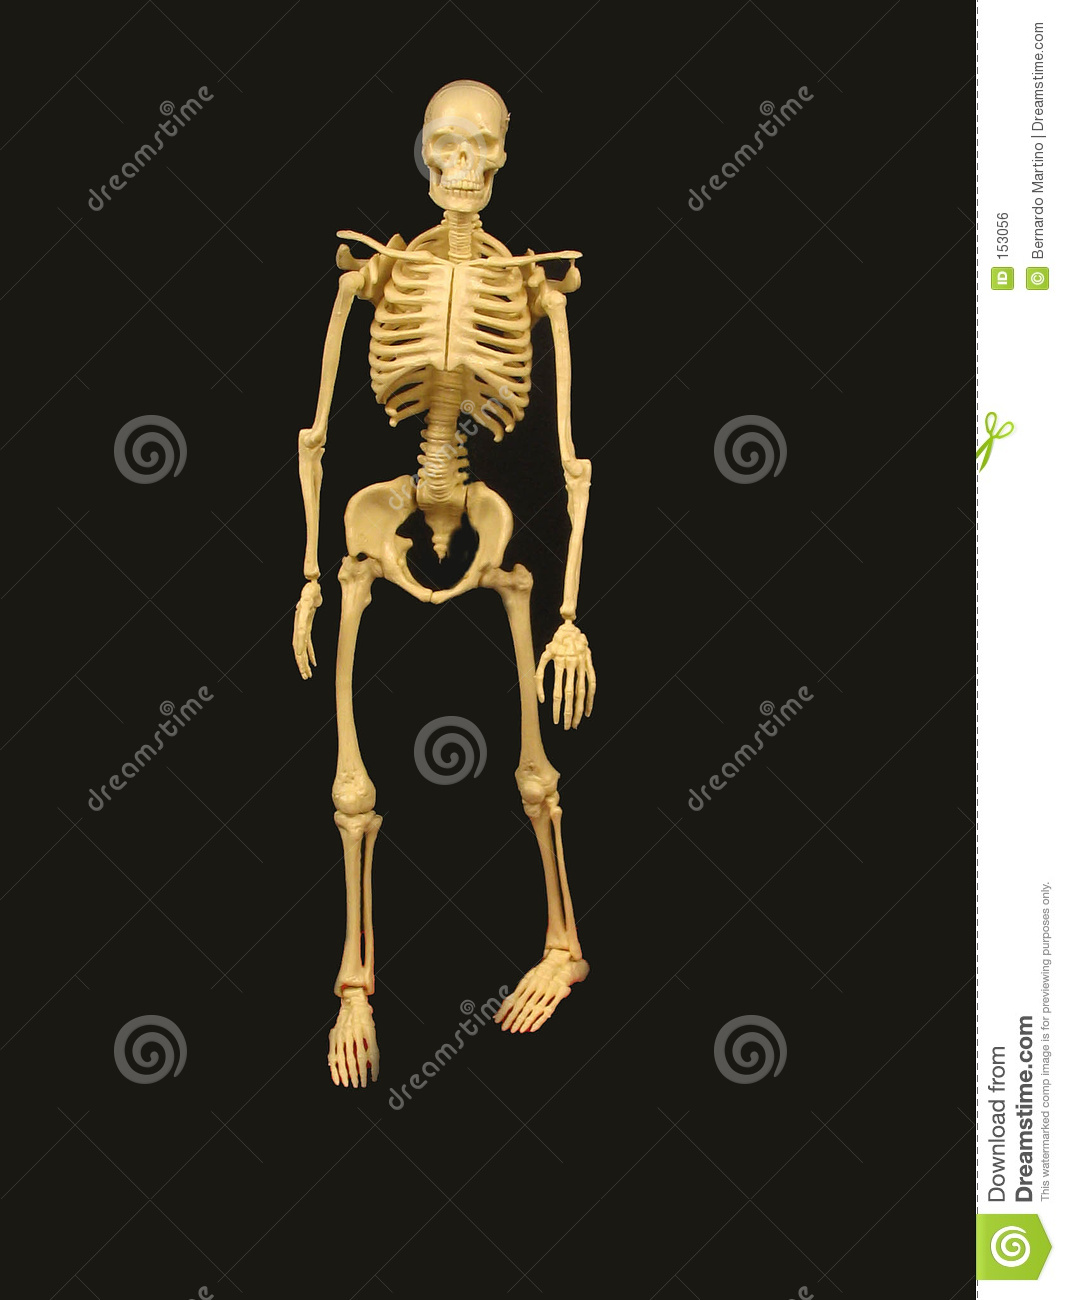 Skeleton without stand